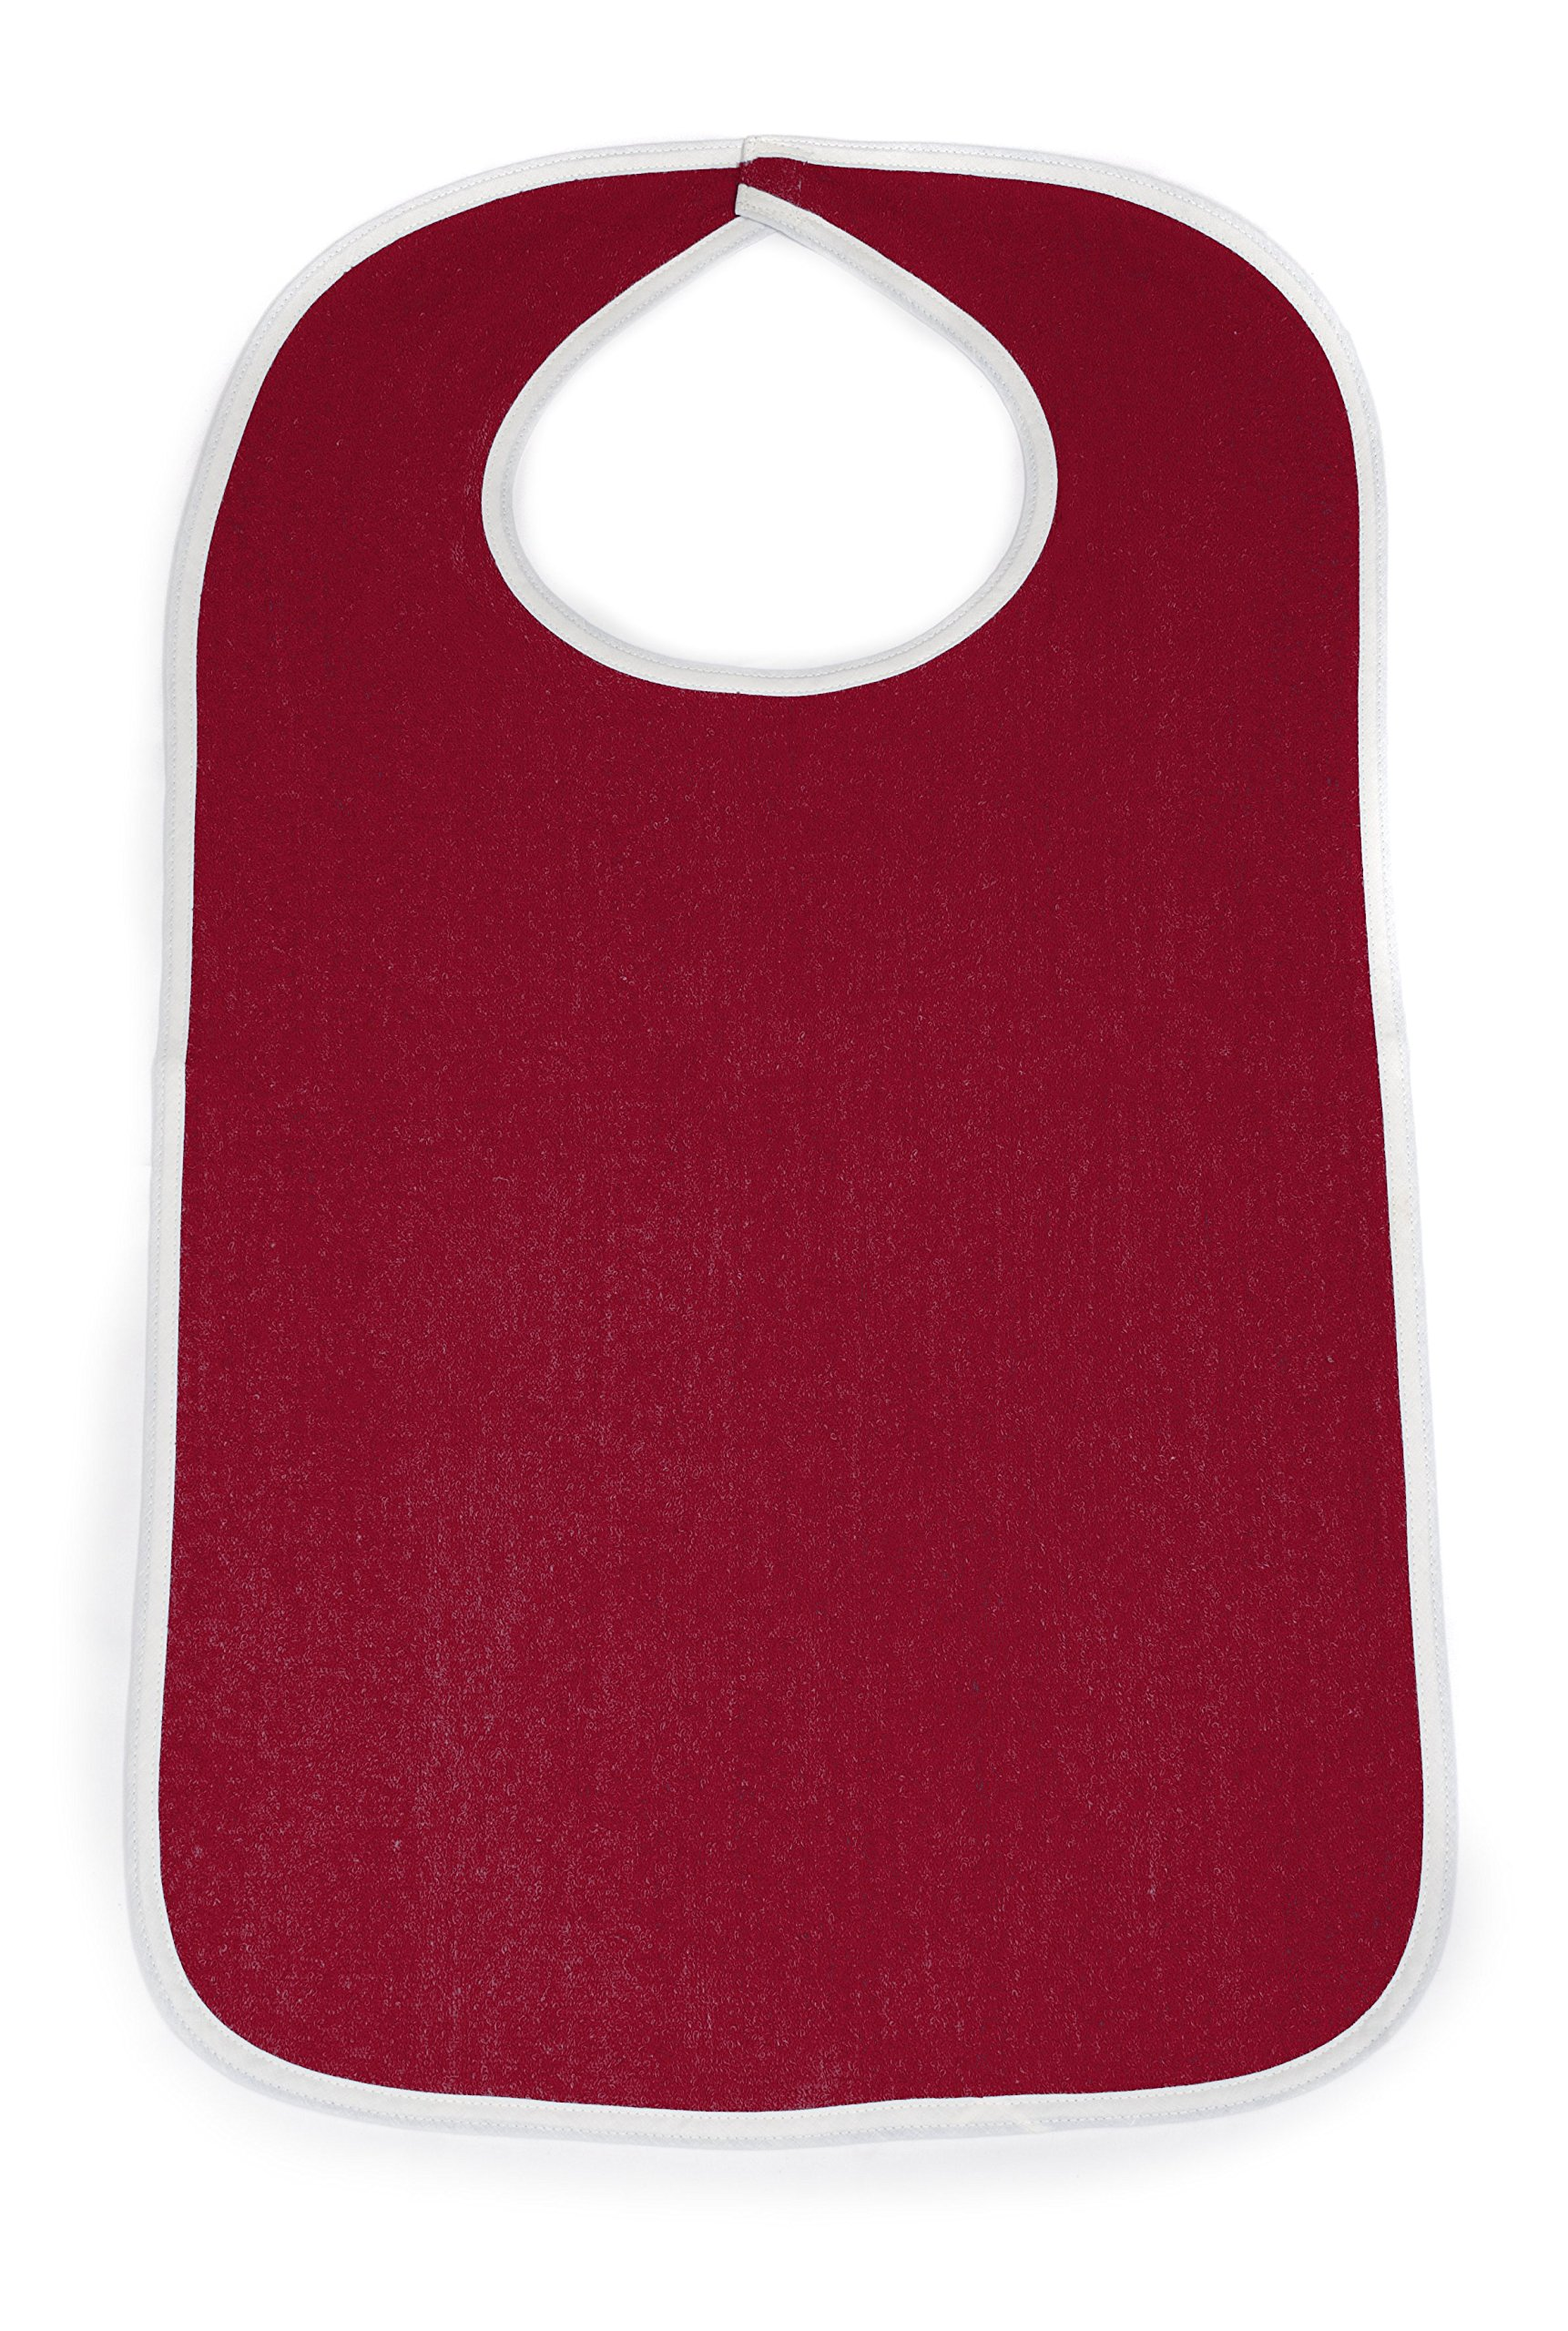 Comfort Finds Terry Cloth Adult Size Senior Bib Value Pack with Hook & Loop Closure - Elderly Men and Women Food Catcher Solutions (Burgundy, 12 Pack) by ComfortFinds